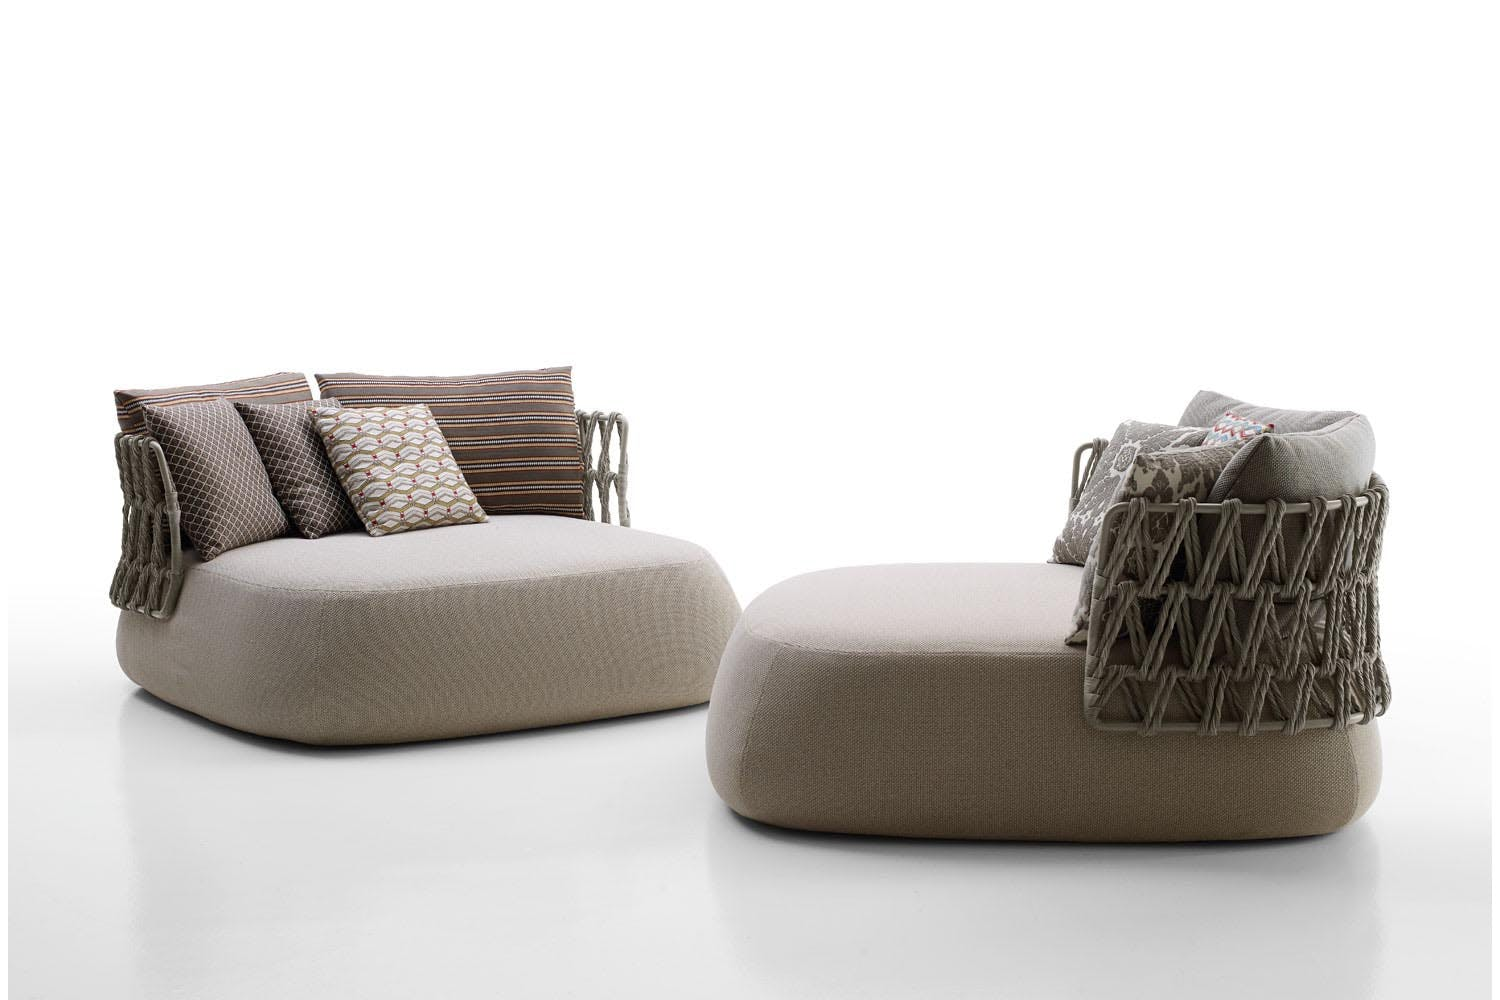 Fat Sofa Outdoor By Patricia Urquiola For B B Italia Space Furniture